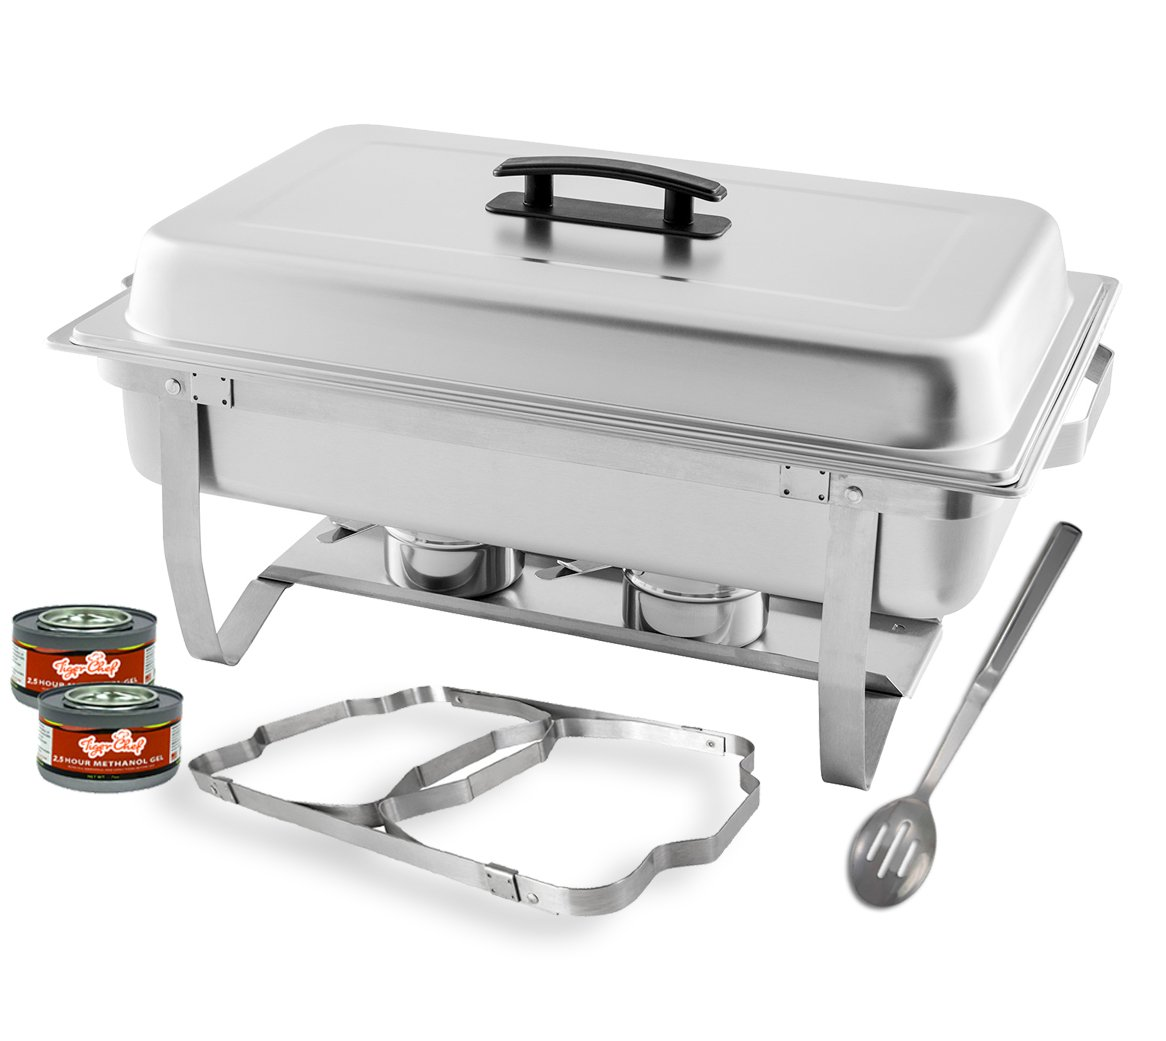 TigerChef 8 Quart Full Size Stainless Steel Chafer with Folding Frame and Cool-Touch Plastic on top - includes 2 Free Chafing Gels and Slotted Serving Spoon (1, 8 Quart Chafer) by Tiger Chef